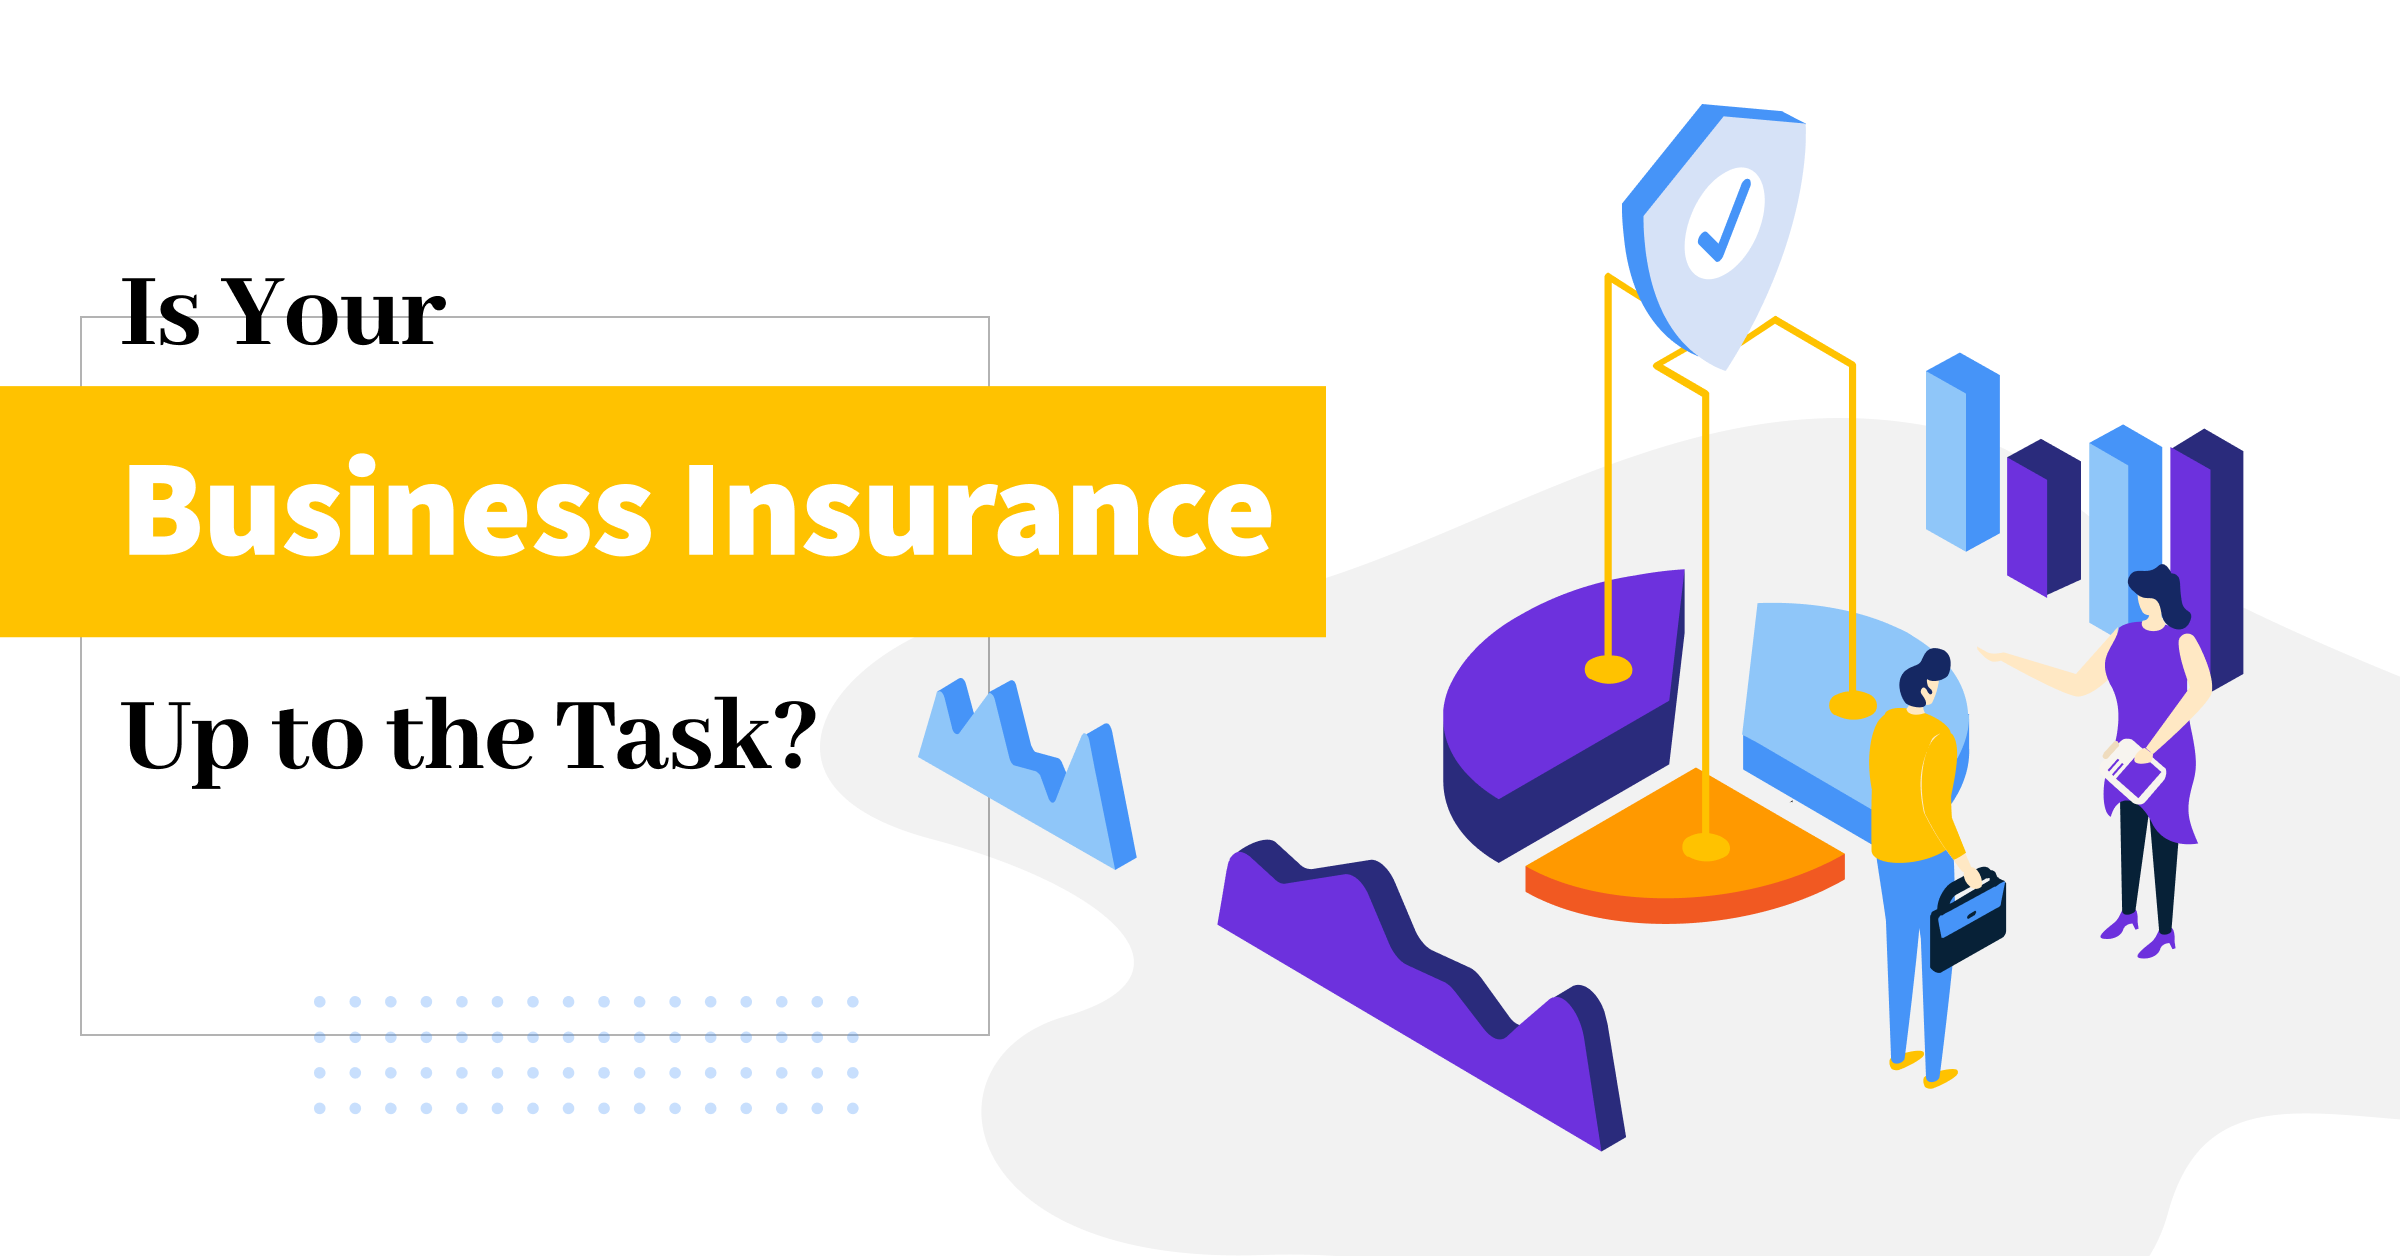 Is Your Business Insurance Up to the Task?